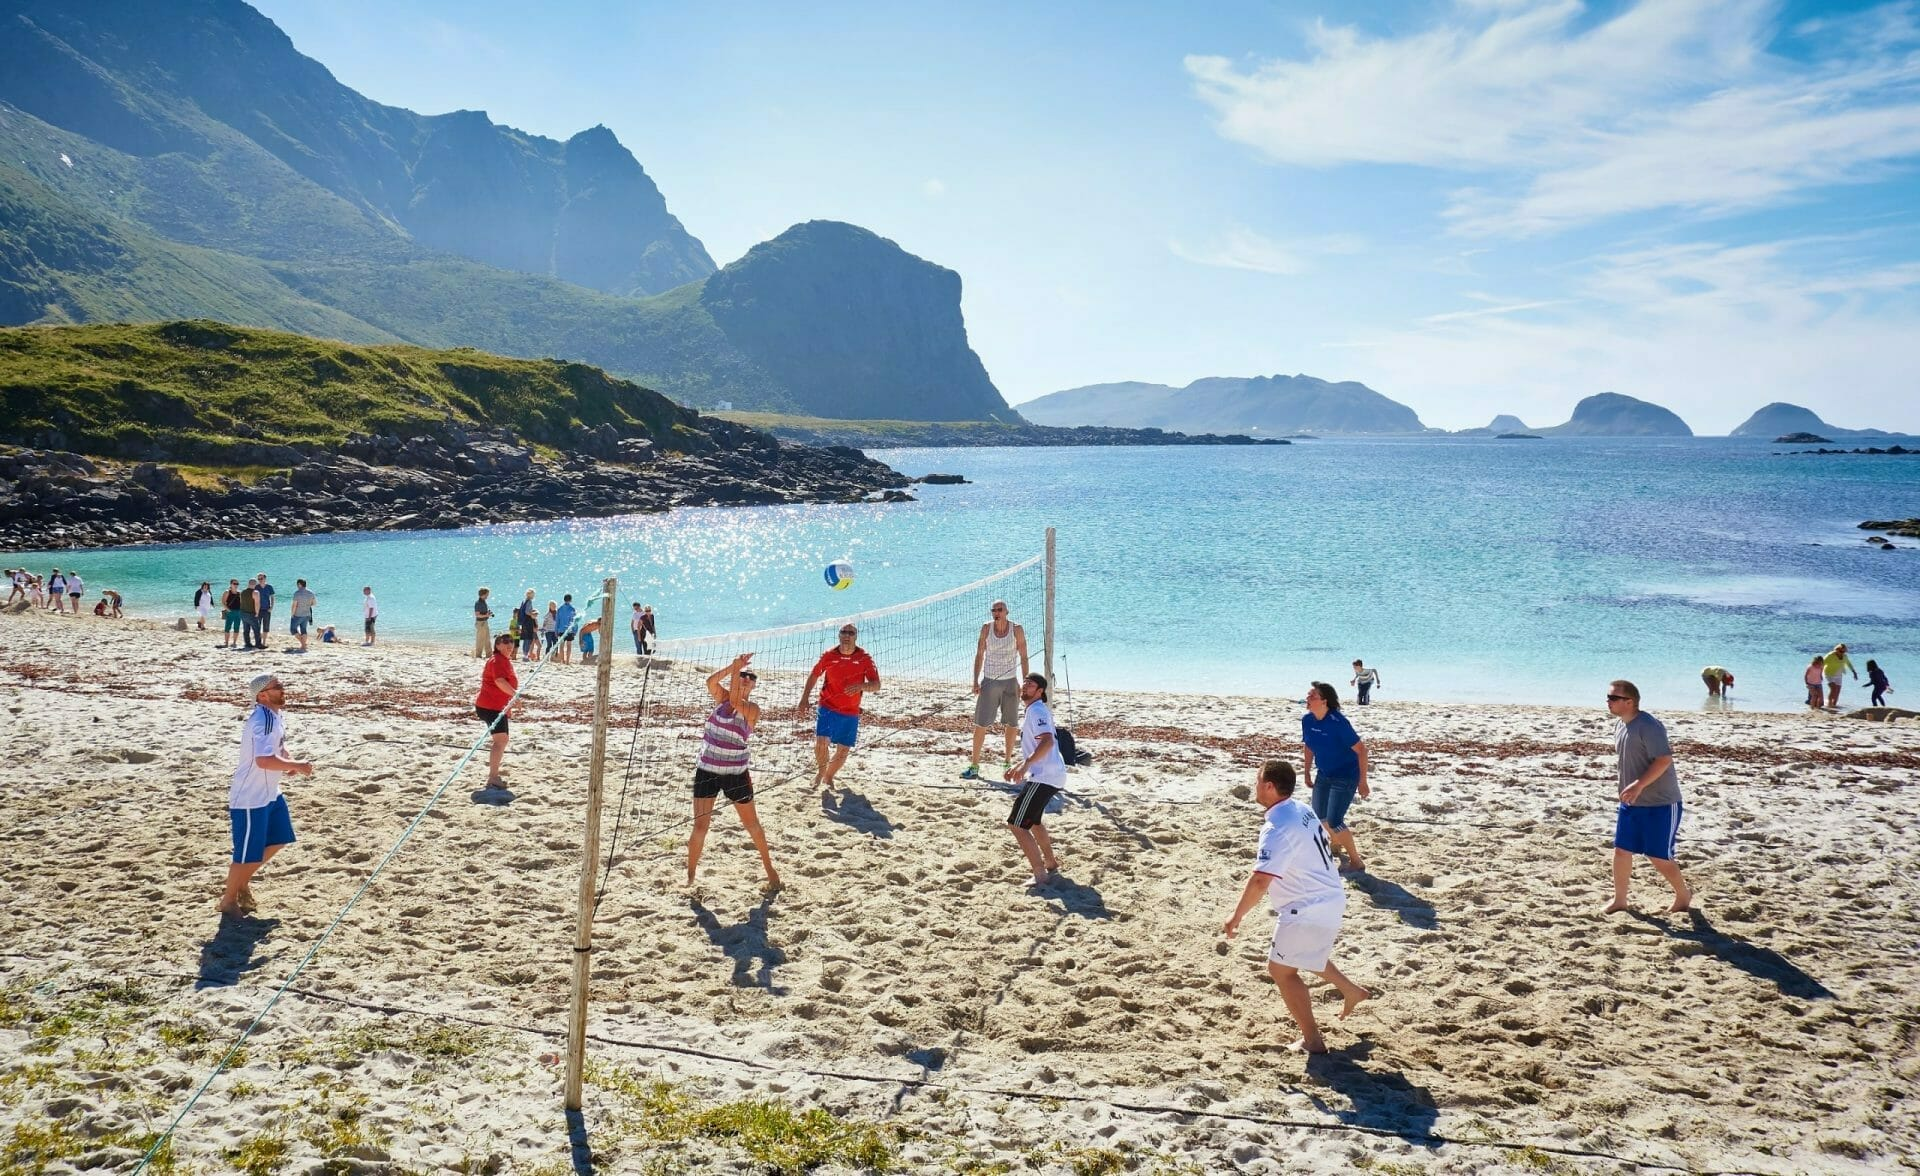 The best beach games to play in the summer